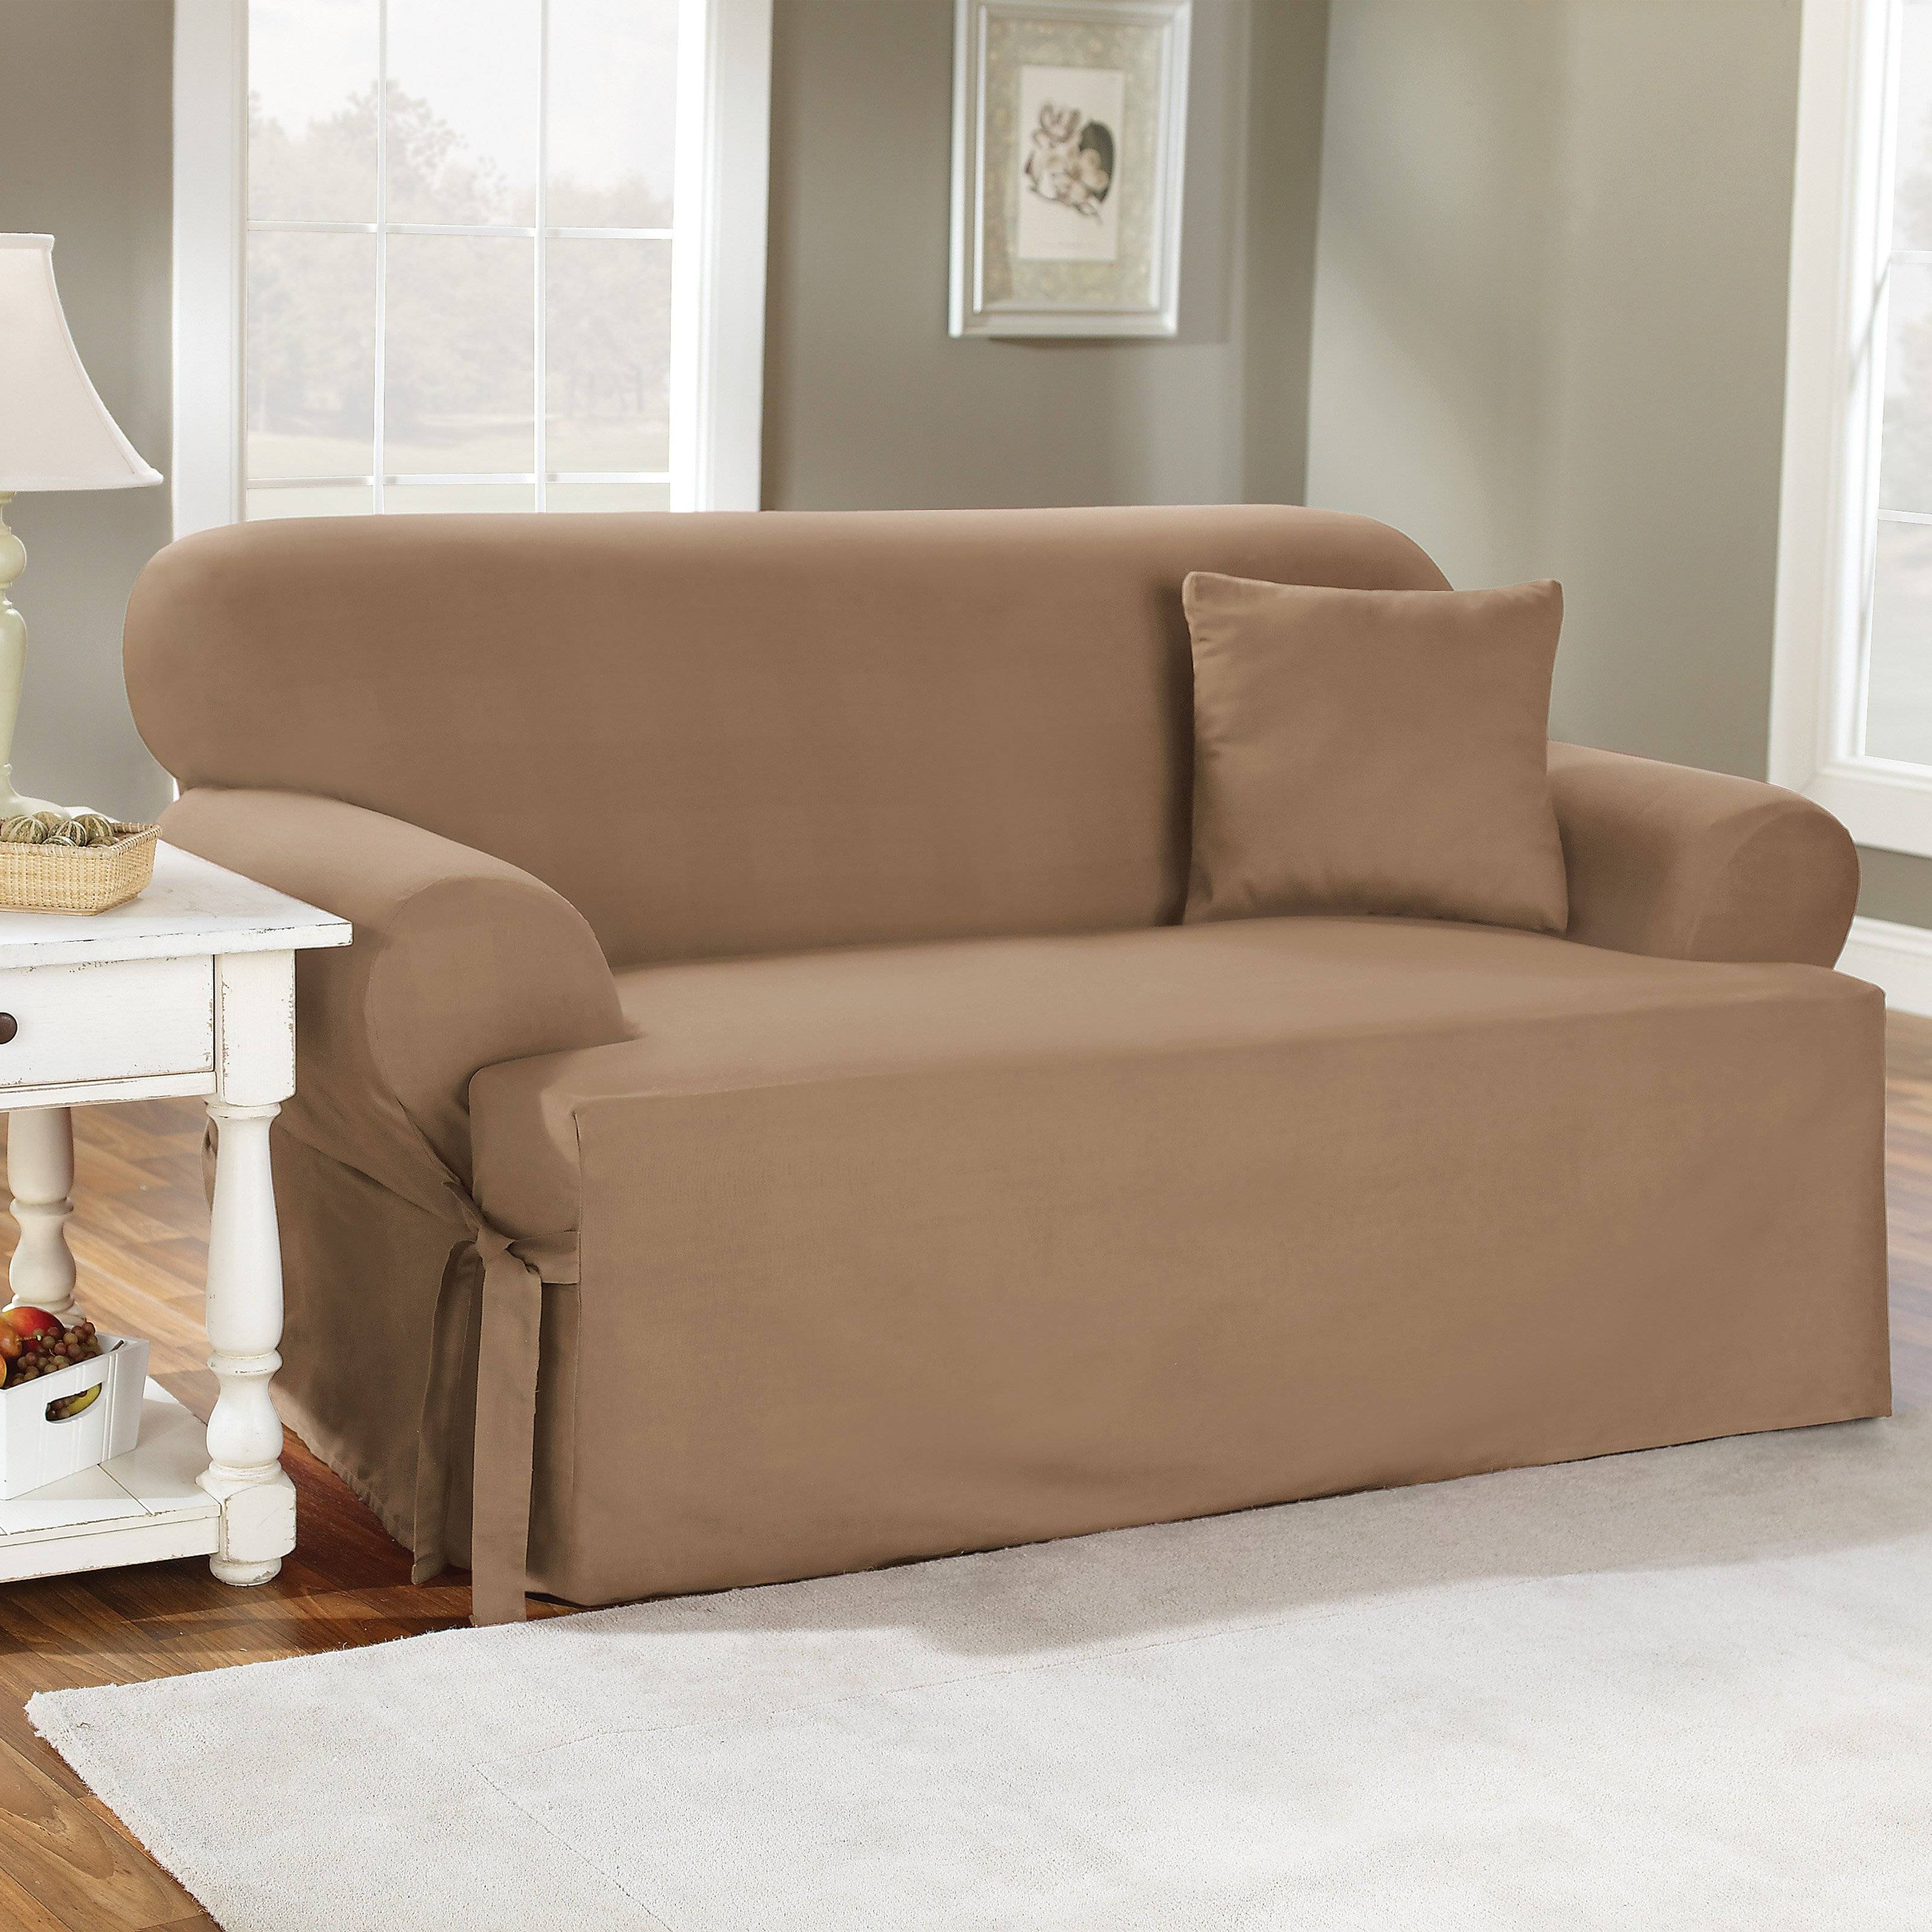 Decor: Fascinating Sofa Covers Walmart For Alluring Furniture pertaining to Sofa And Chair Covers (Image 4 of 30)